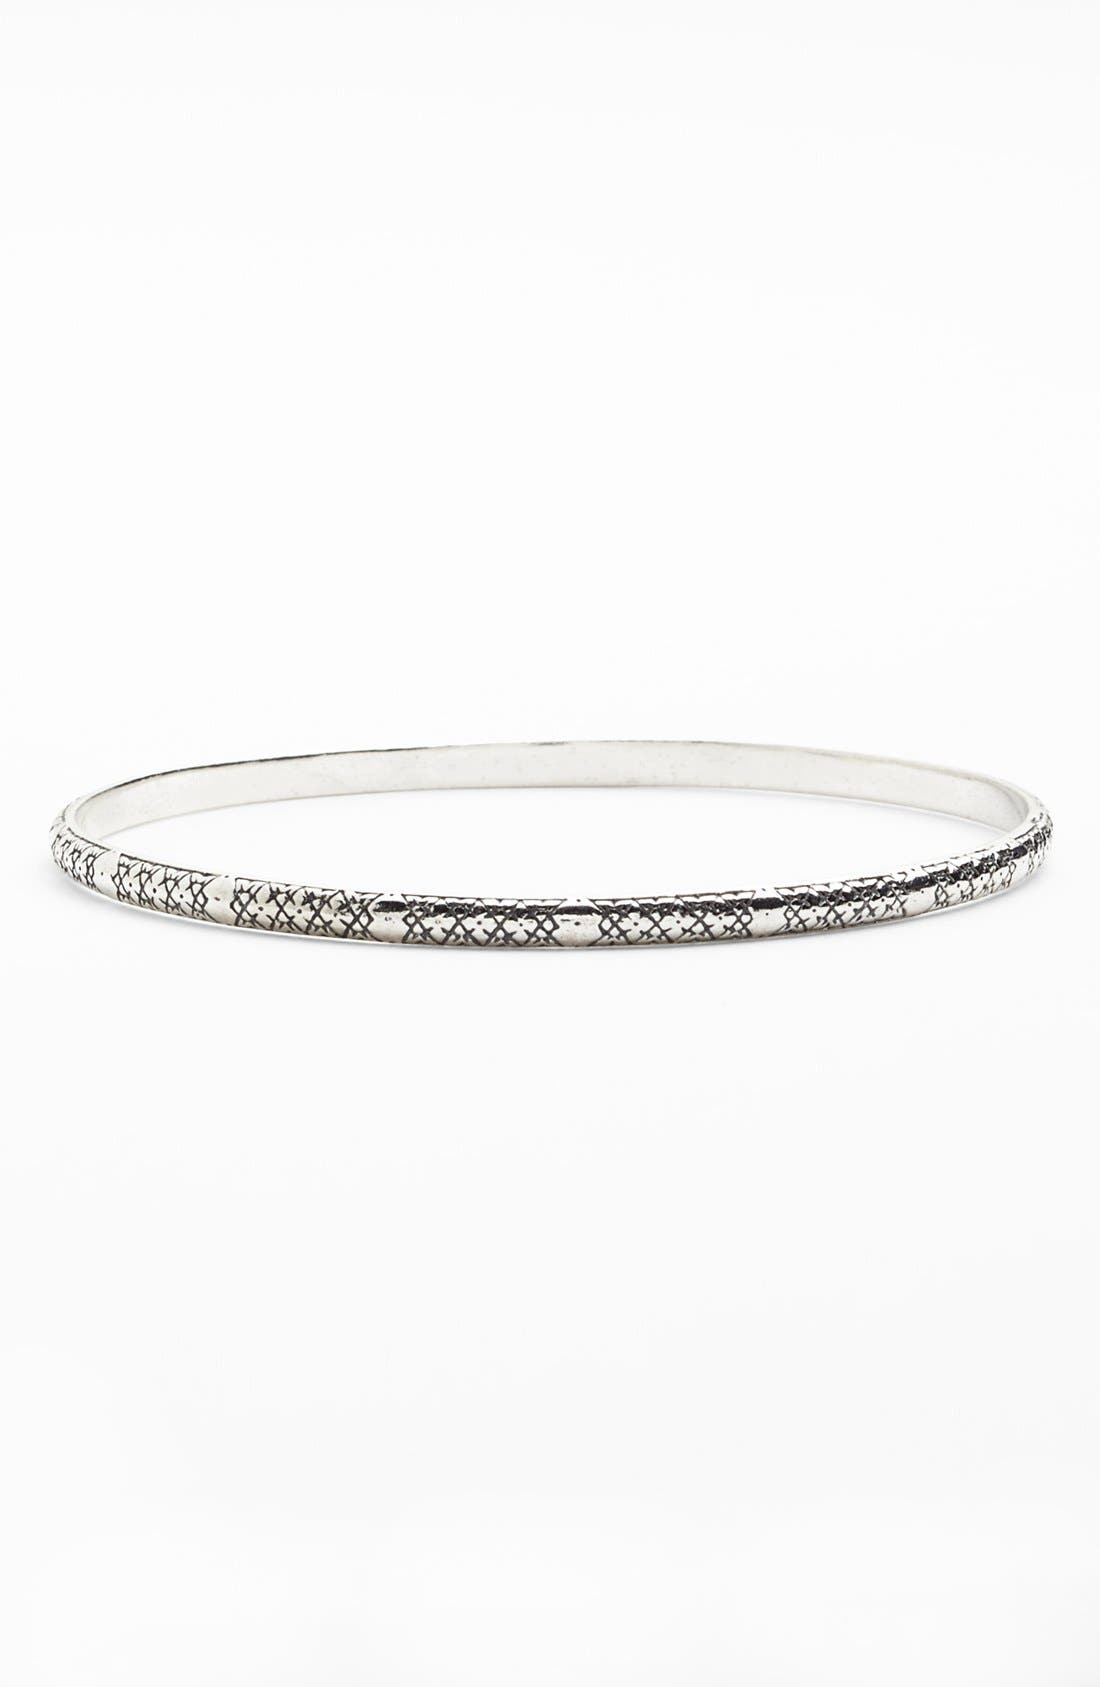 Main Image - Konstantino 'Classics' Etched Bangle